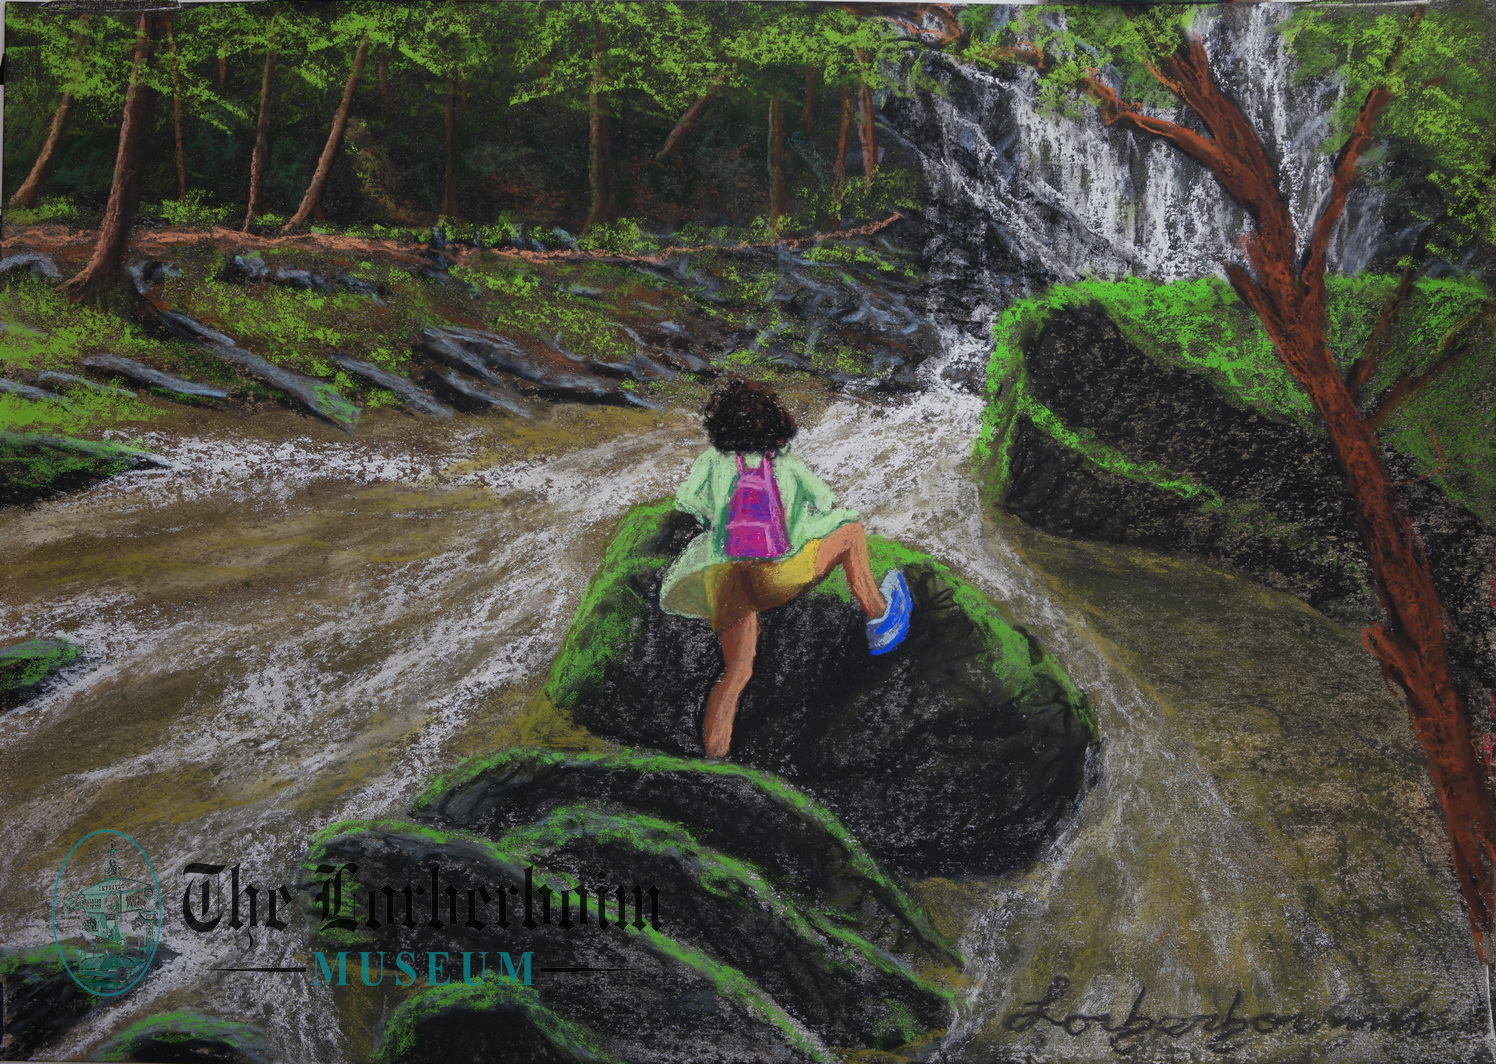 Lek climbs on rock in river, Museum, Lorberboim, Tlmuseum.com, artnot4sale, Lorberboim.com, Lorberboim Soft Pastel Painting,